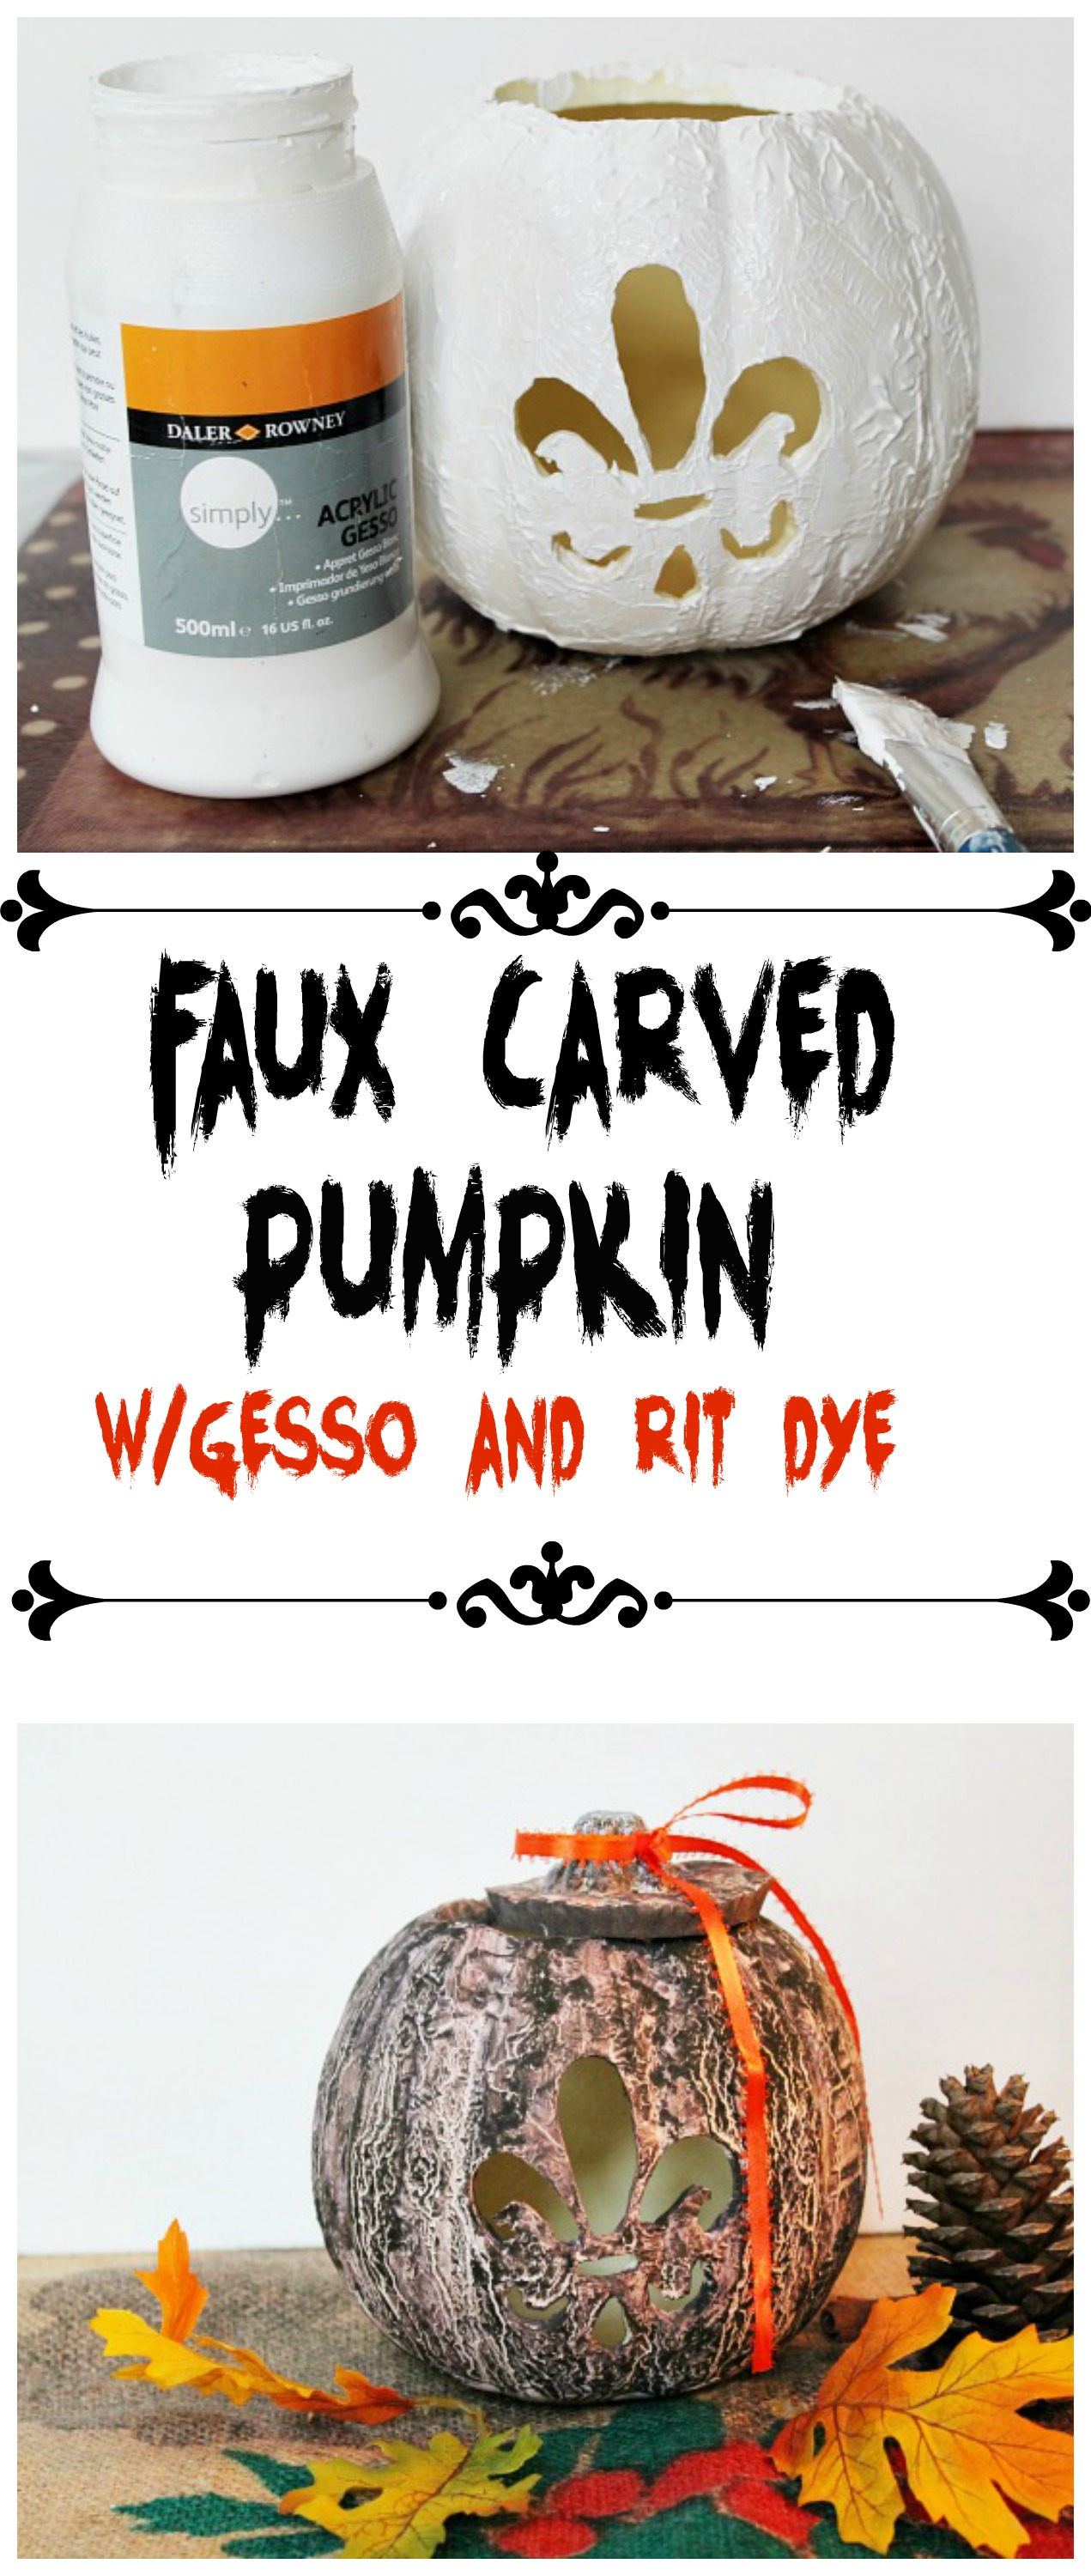 Faux carved pumpkin with gesso and rit dye